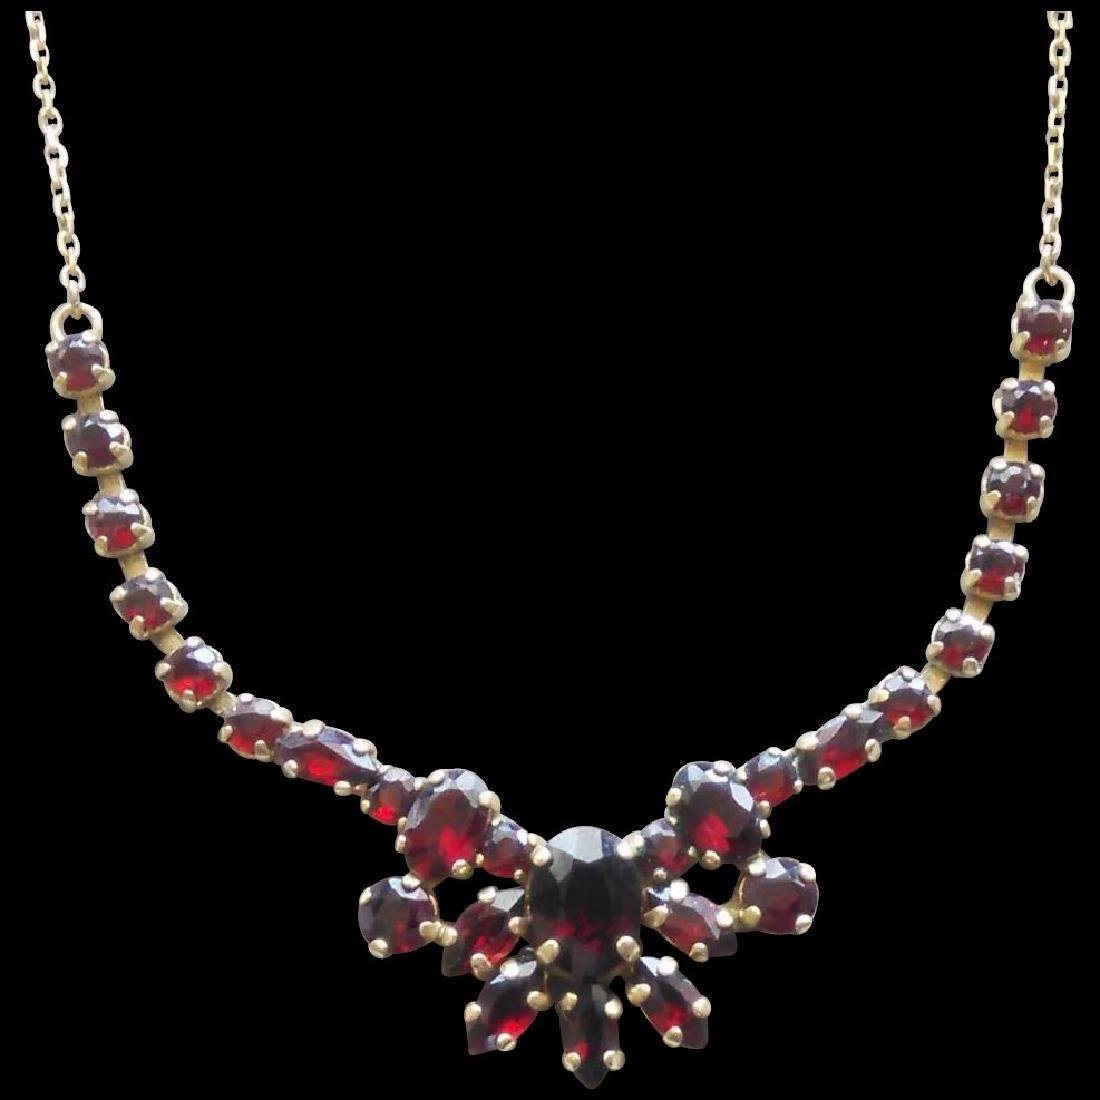 Vintage 24K Yellow Gold Red Garnet Necklace